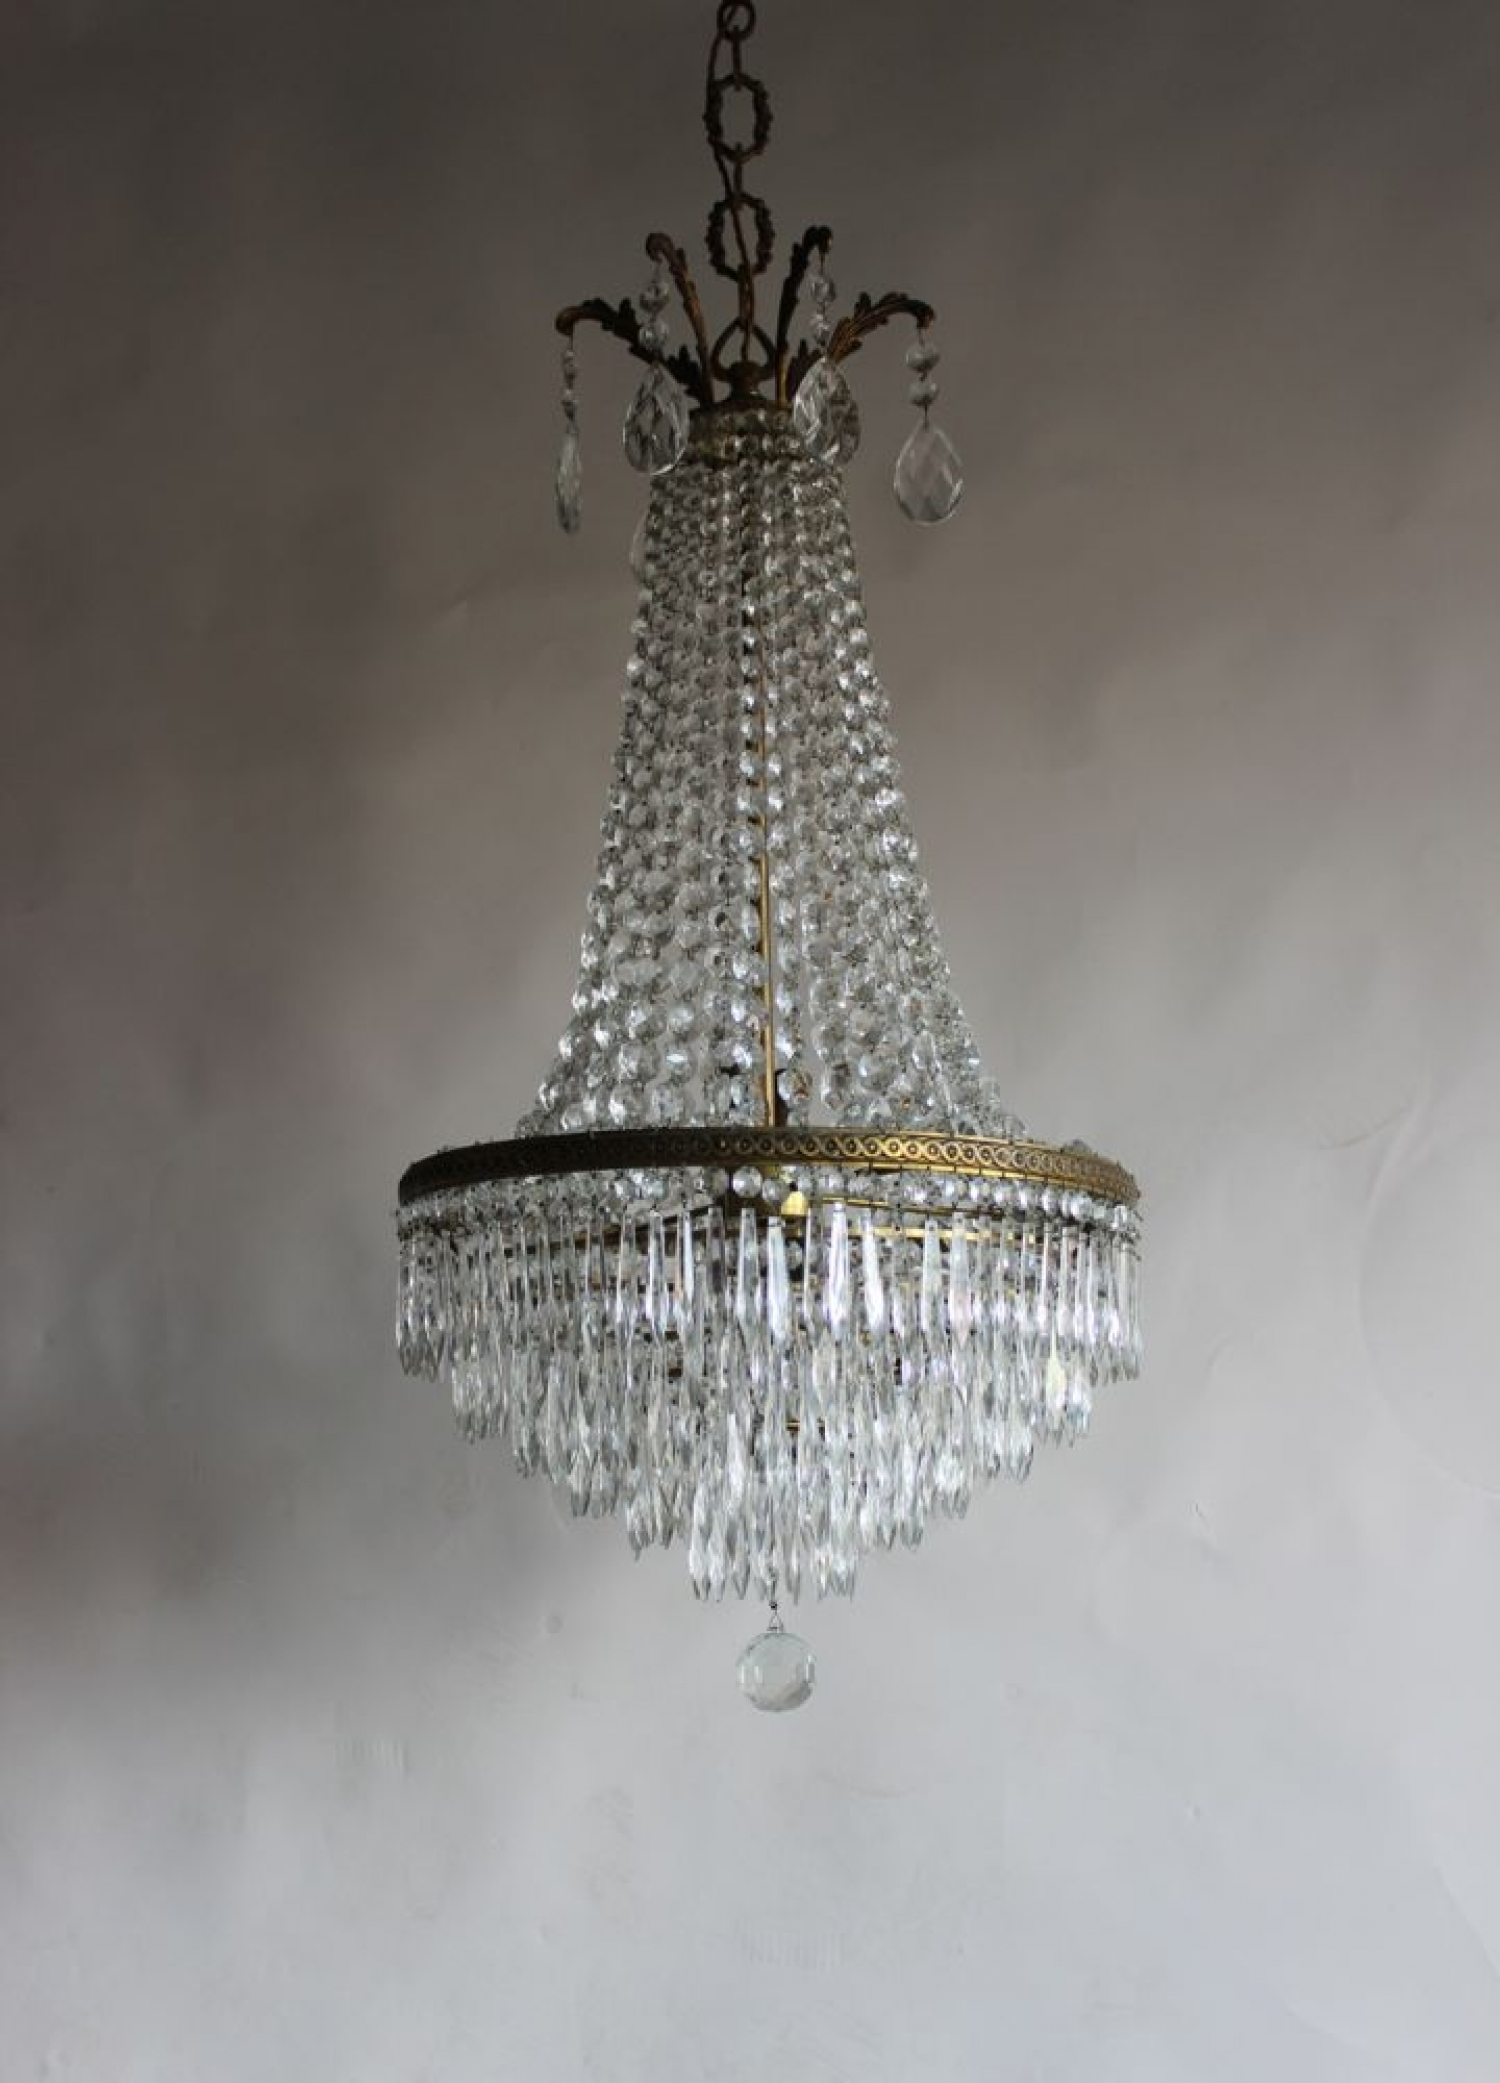 Antique Chandeliers added to the website today - Main image - Antique Chandeliers Added To The Website Today - Norfolk